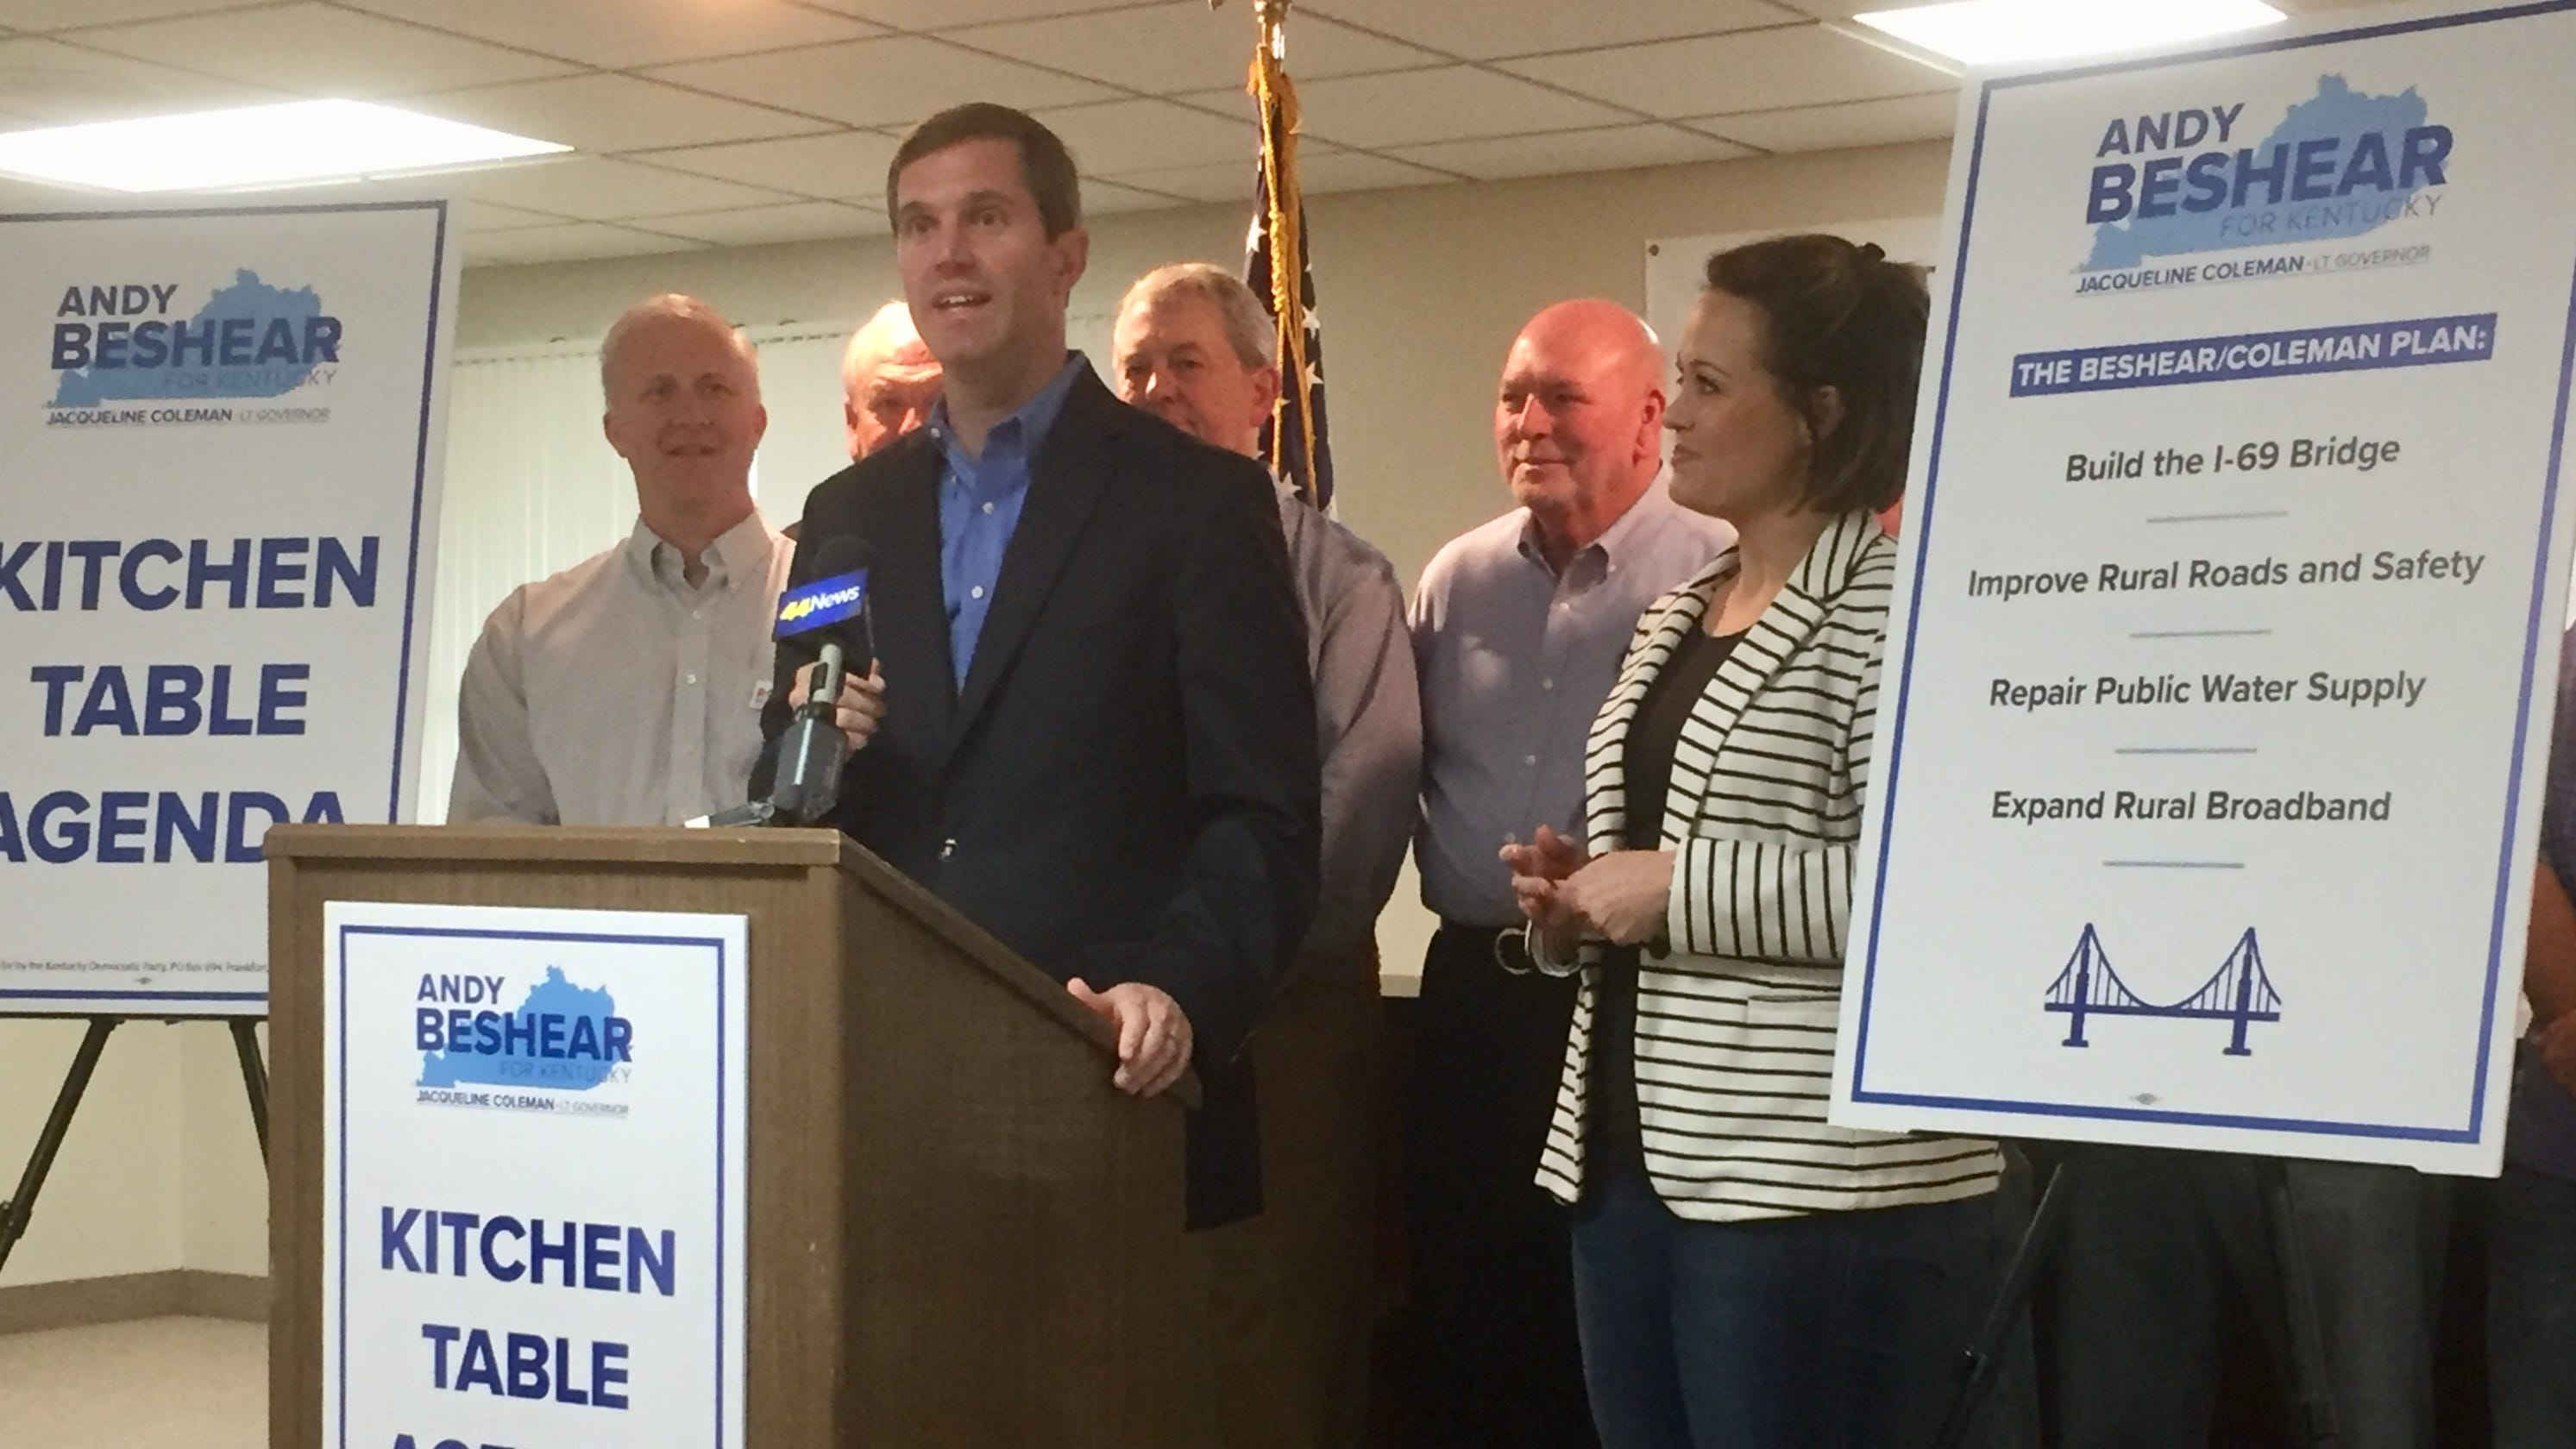 Andy Beshear Says 'we Will Build I-69 Bridge In My First Term